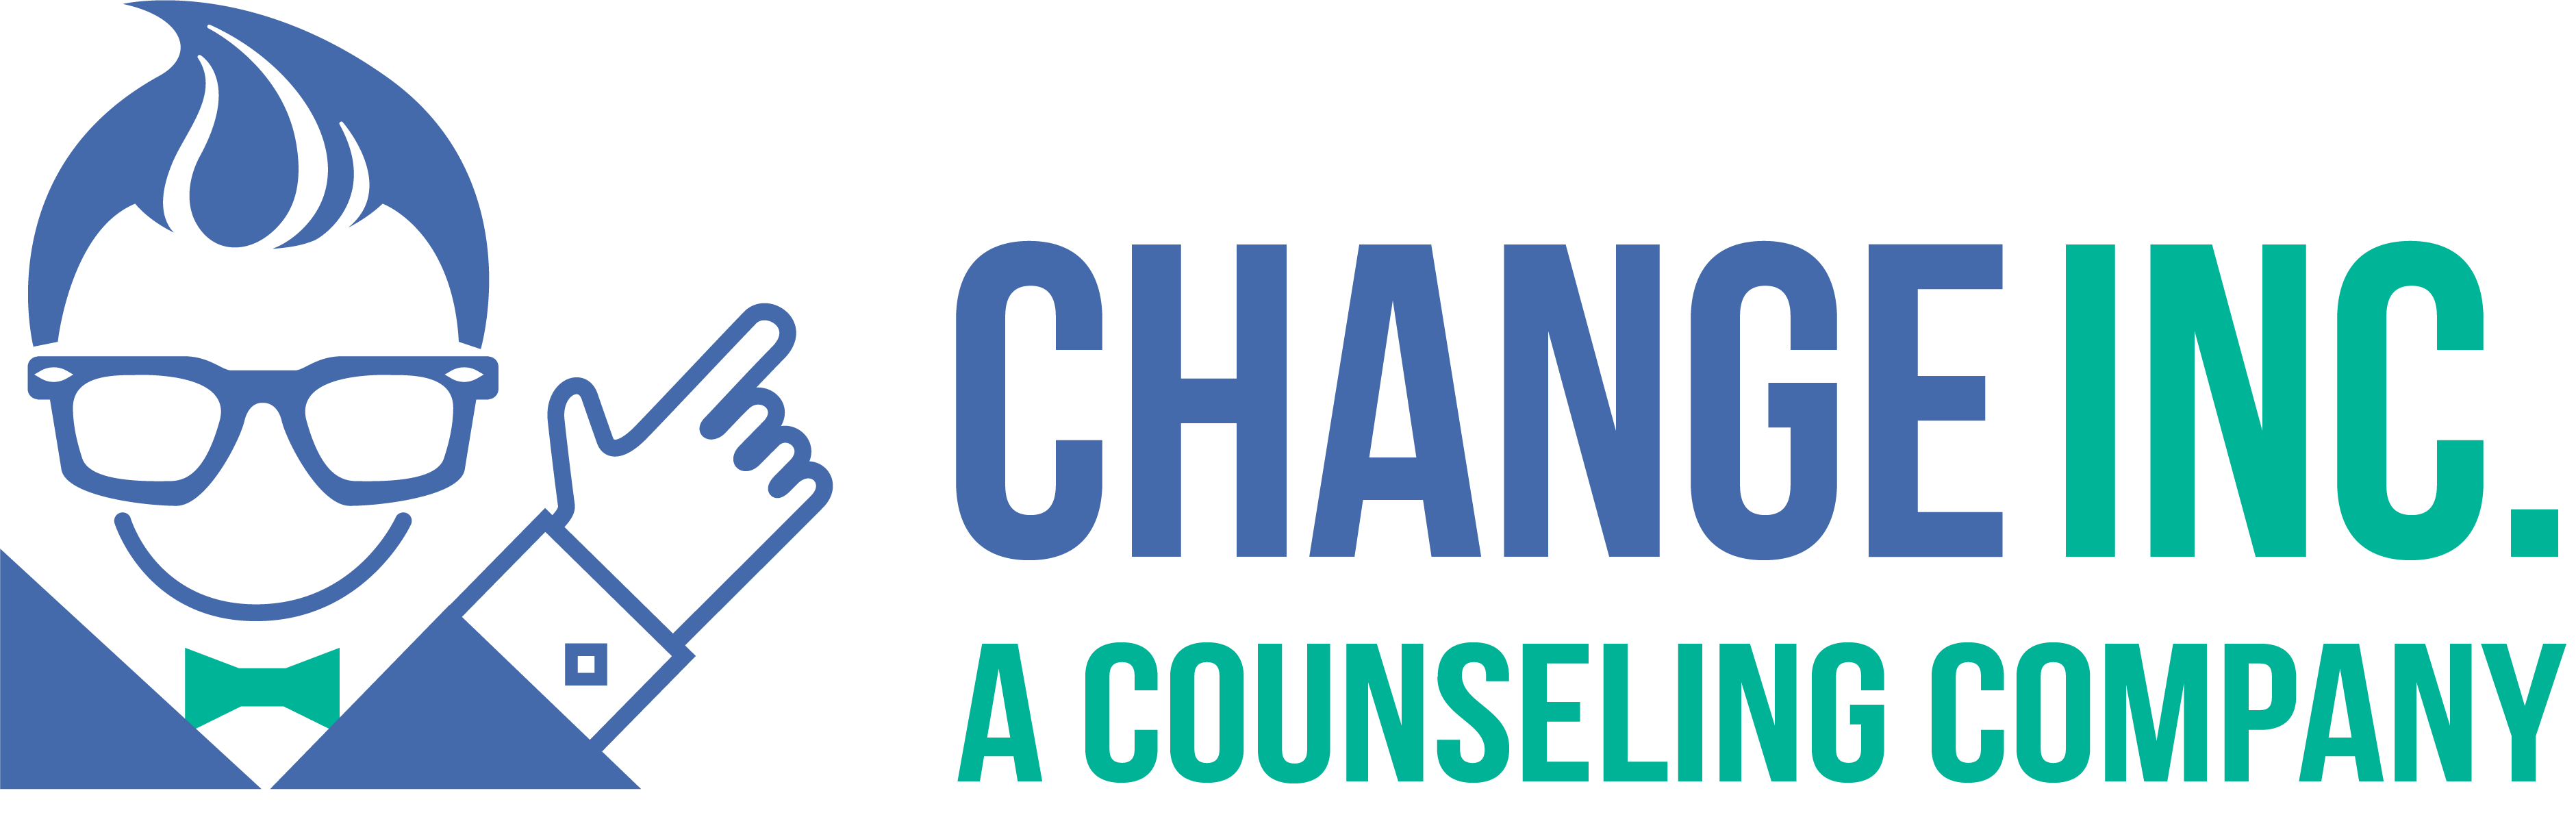 Change, Inc. St. Louis Counseling